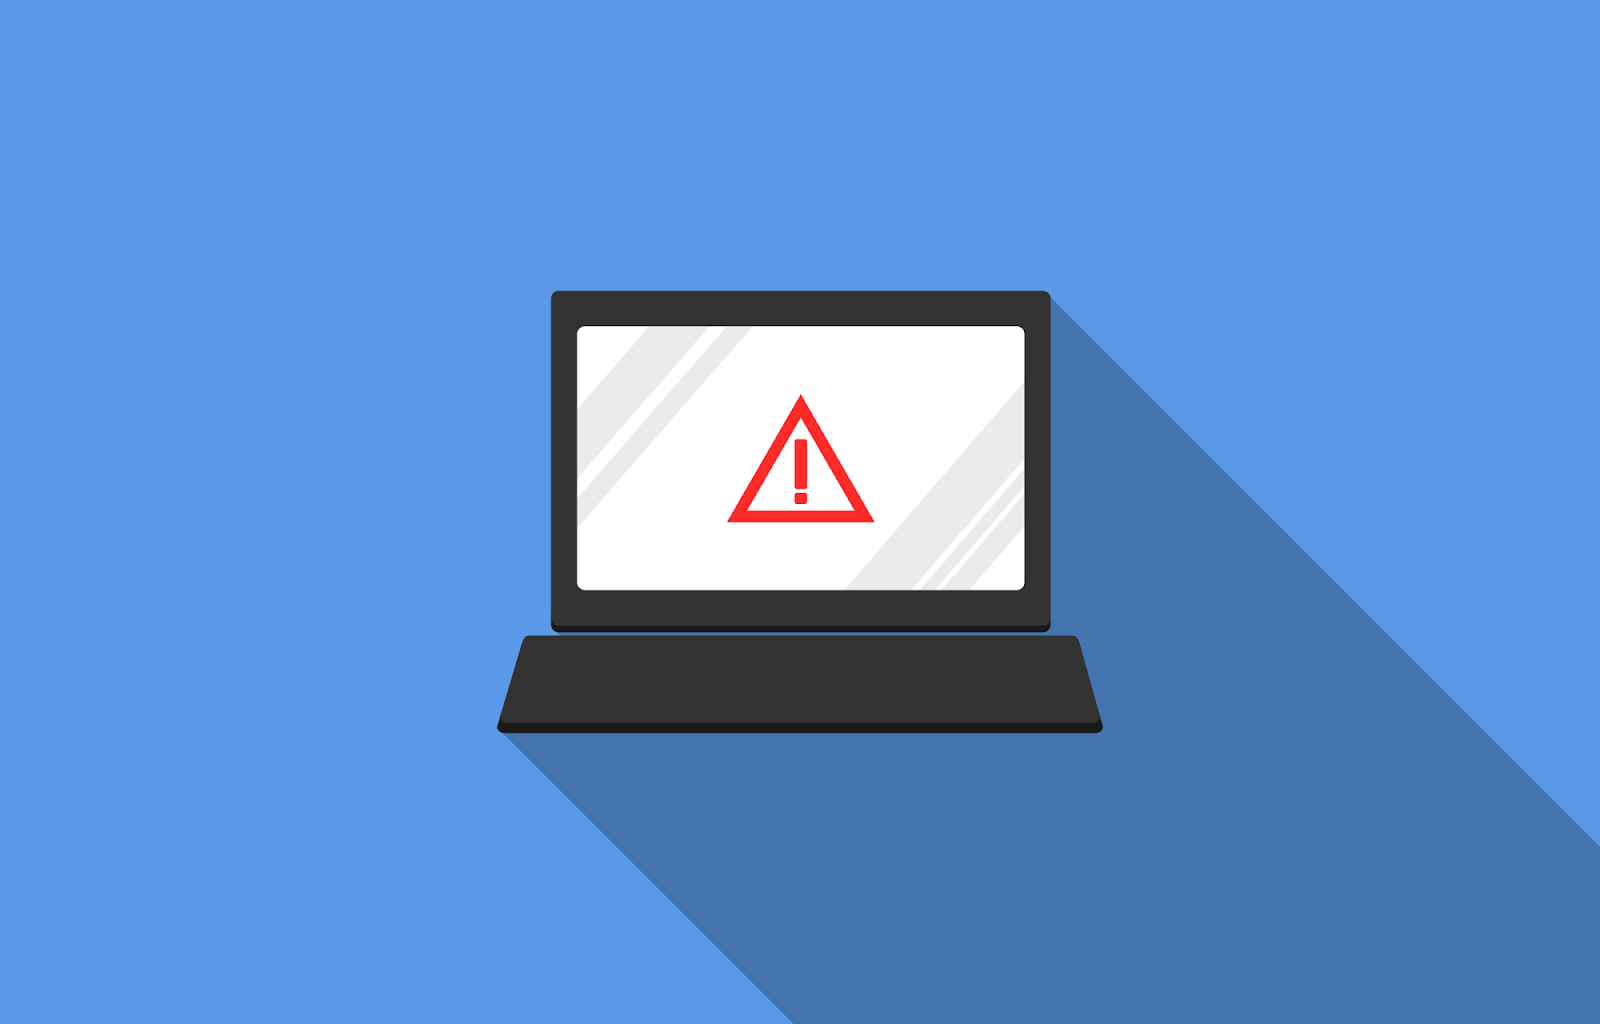 How to Fix [pii_email_027301e7af80ce24cbce] Error Code in Mail?